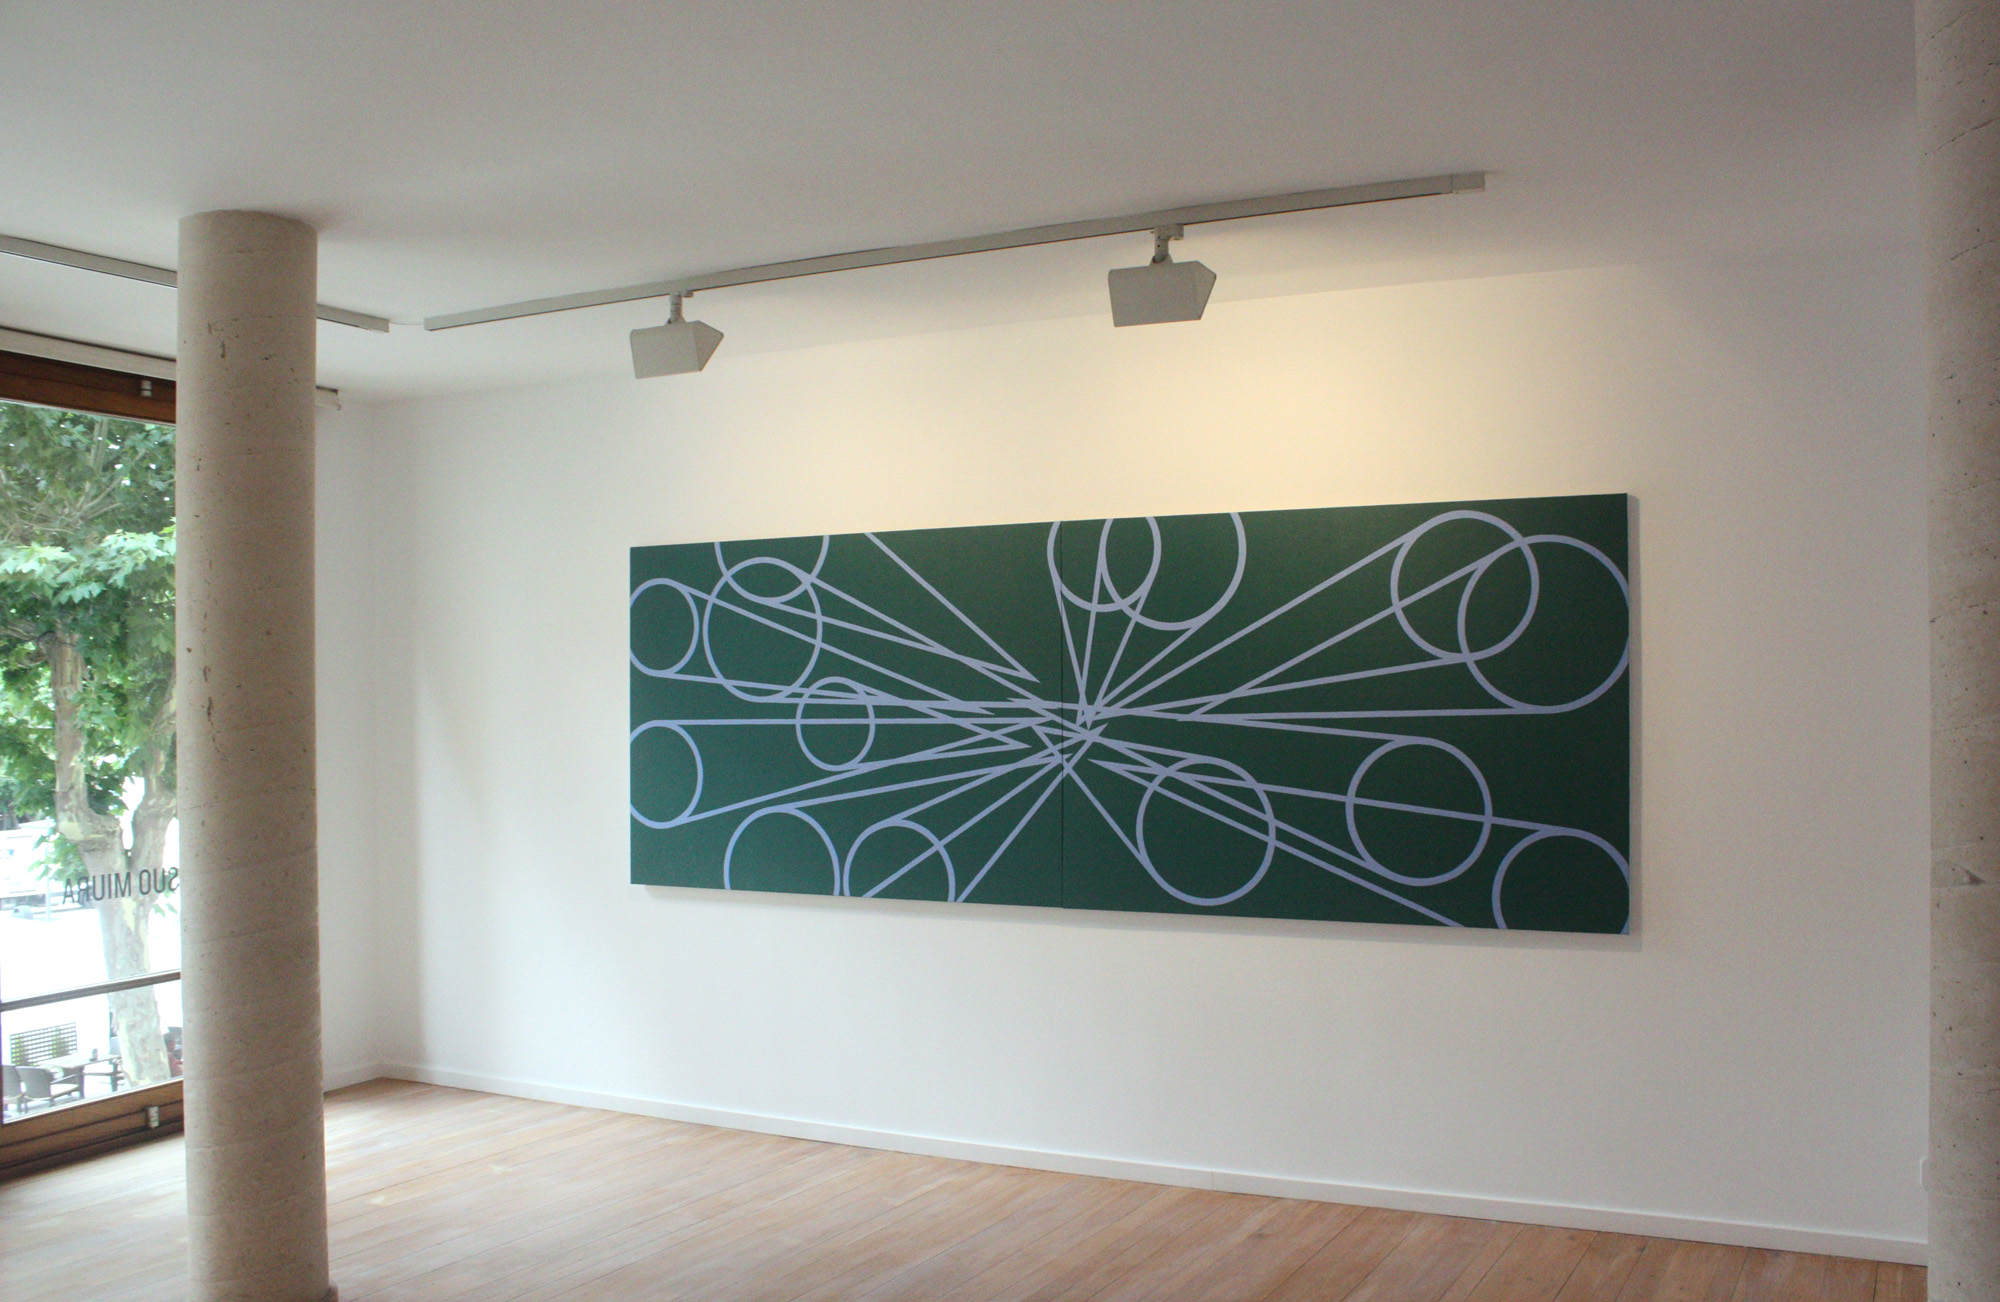 Exhibition view Memorias Imaginads in the Galeria Maior Pollença, 2015